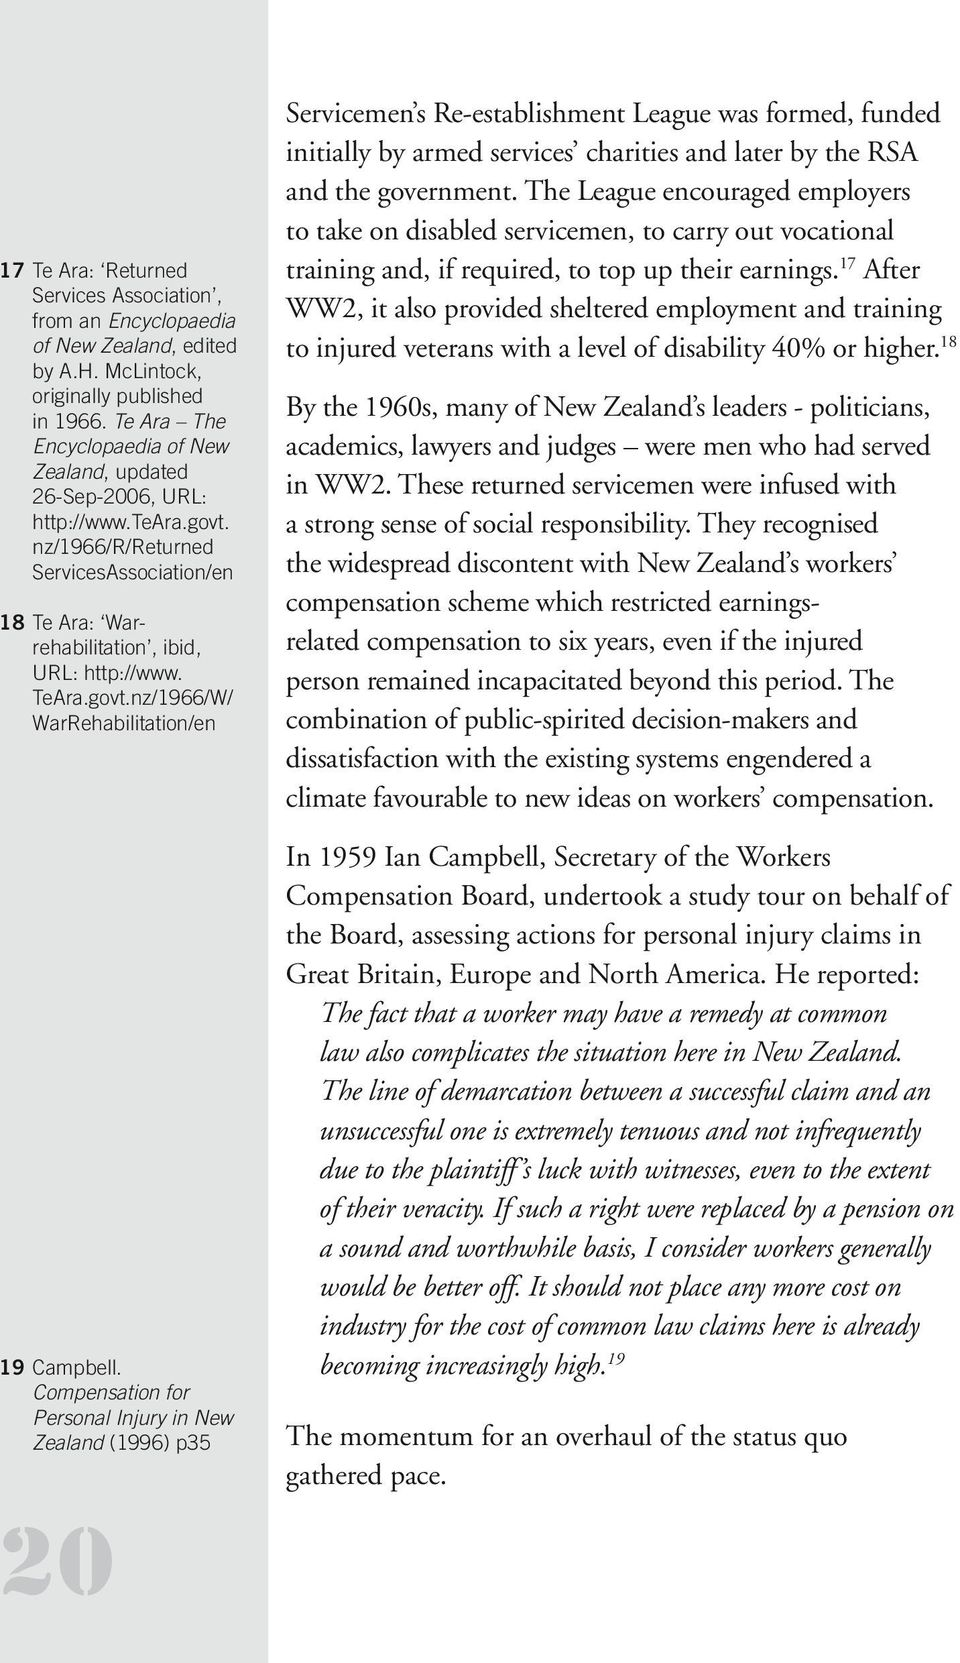 Compensation for Personal Injury in New Zealand (1996) p35 20 Servicemen s Re-establishment League was formed, funded initially by armed services charities and later by the RSA and the government.